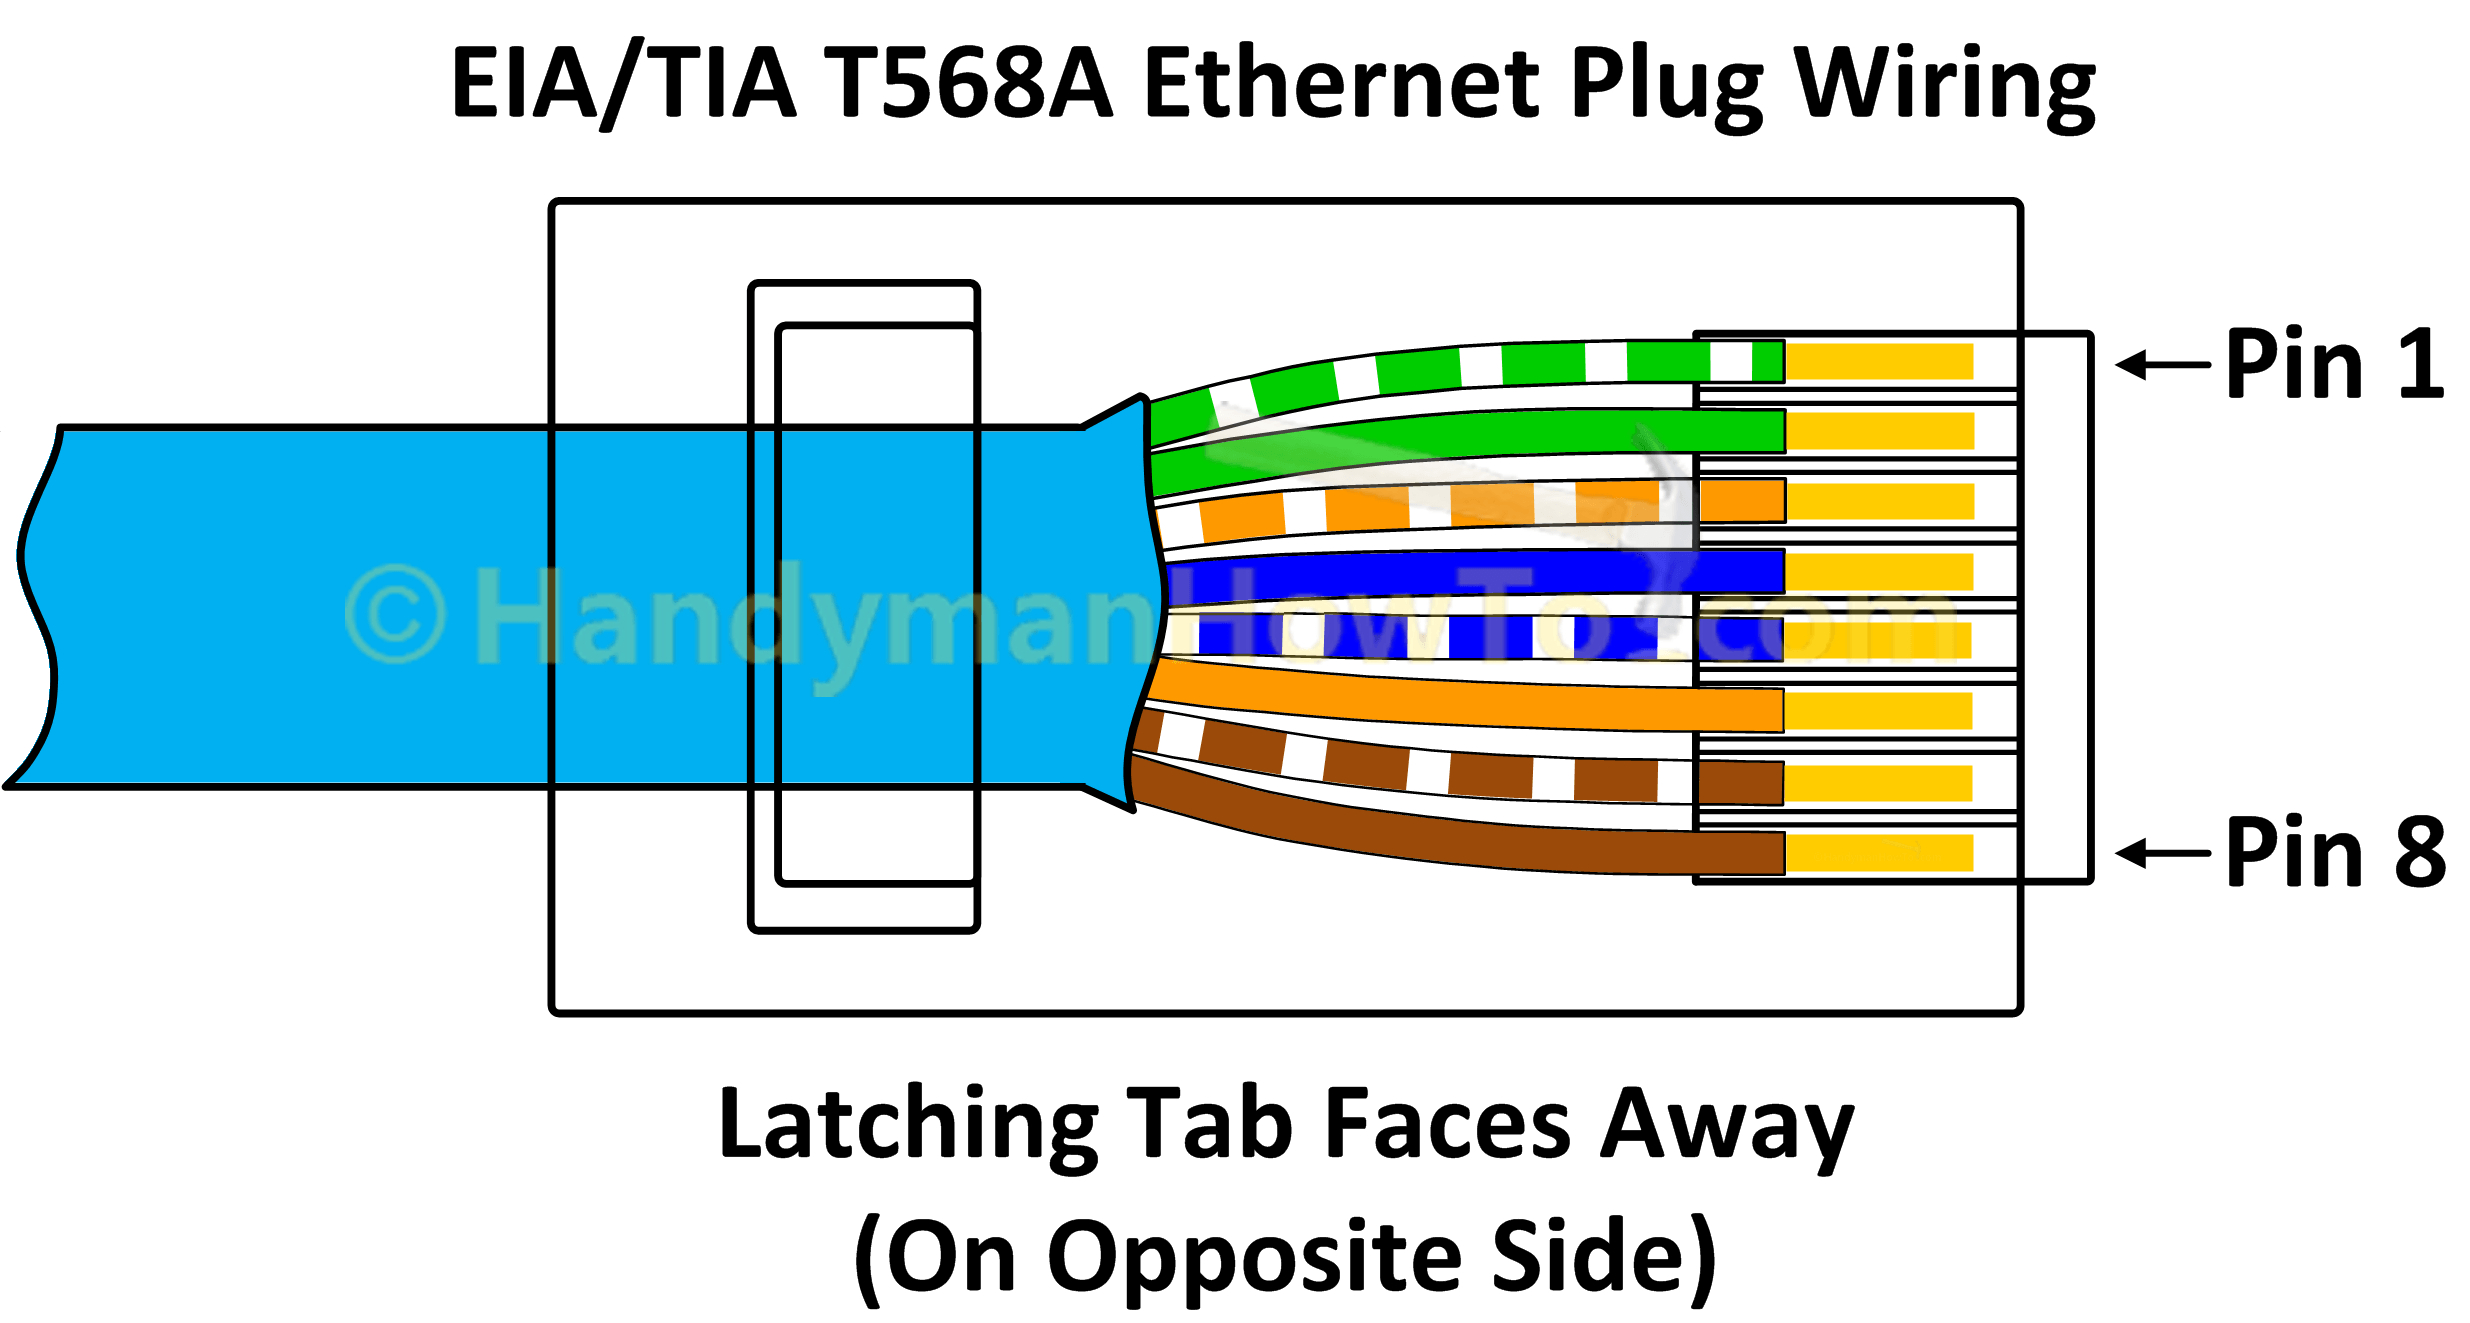 Usb Rj45 Wiring Diagram | Wiring Diagram - Ups Communications Cable Simple Signalling - Usb To Rj45 Wiring Diagram